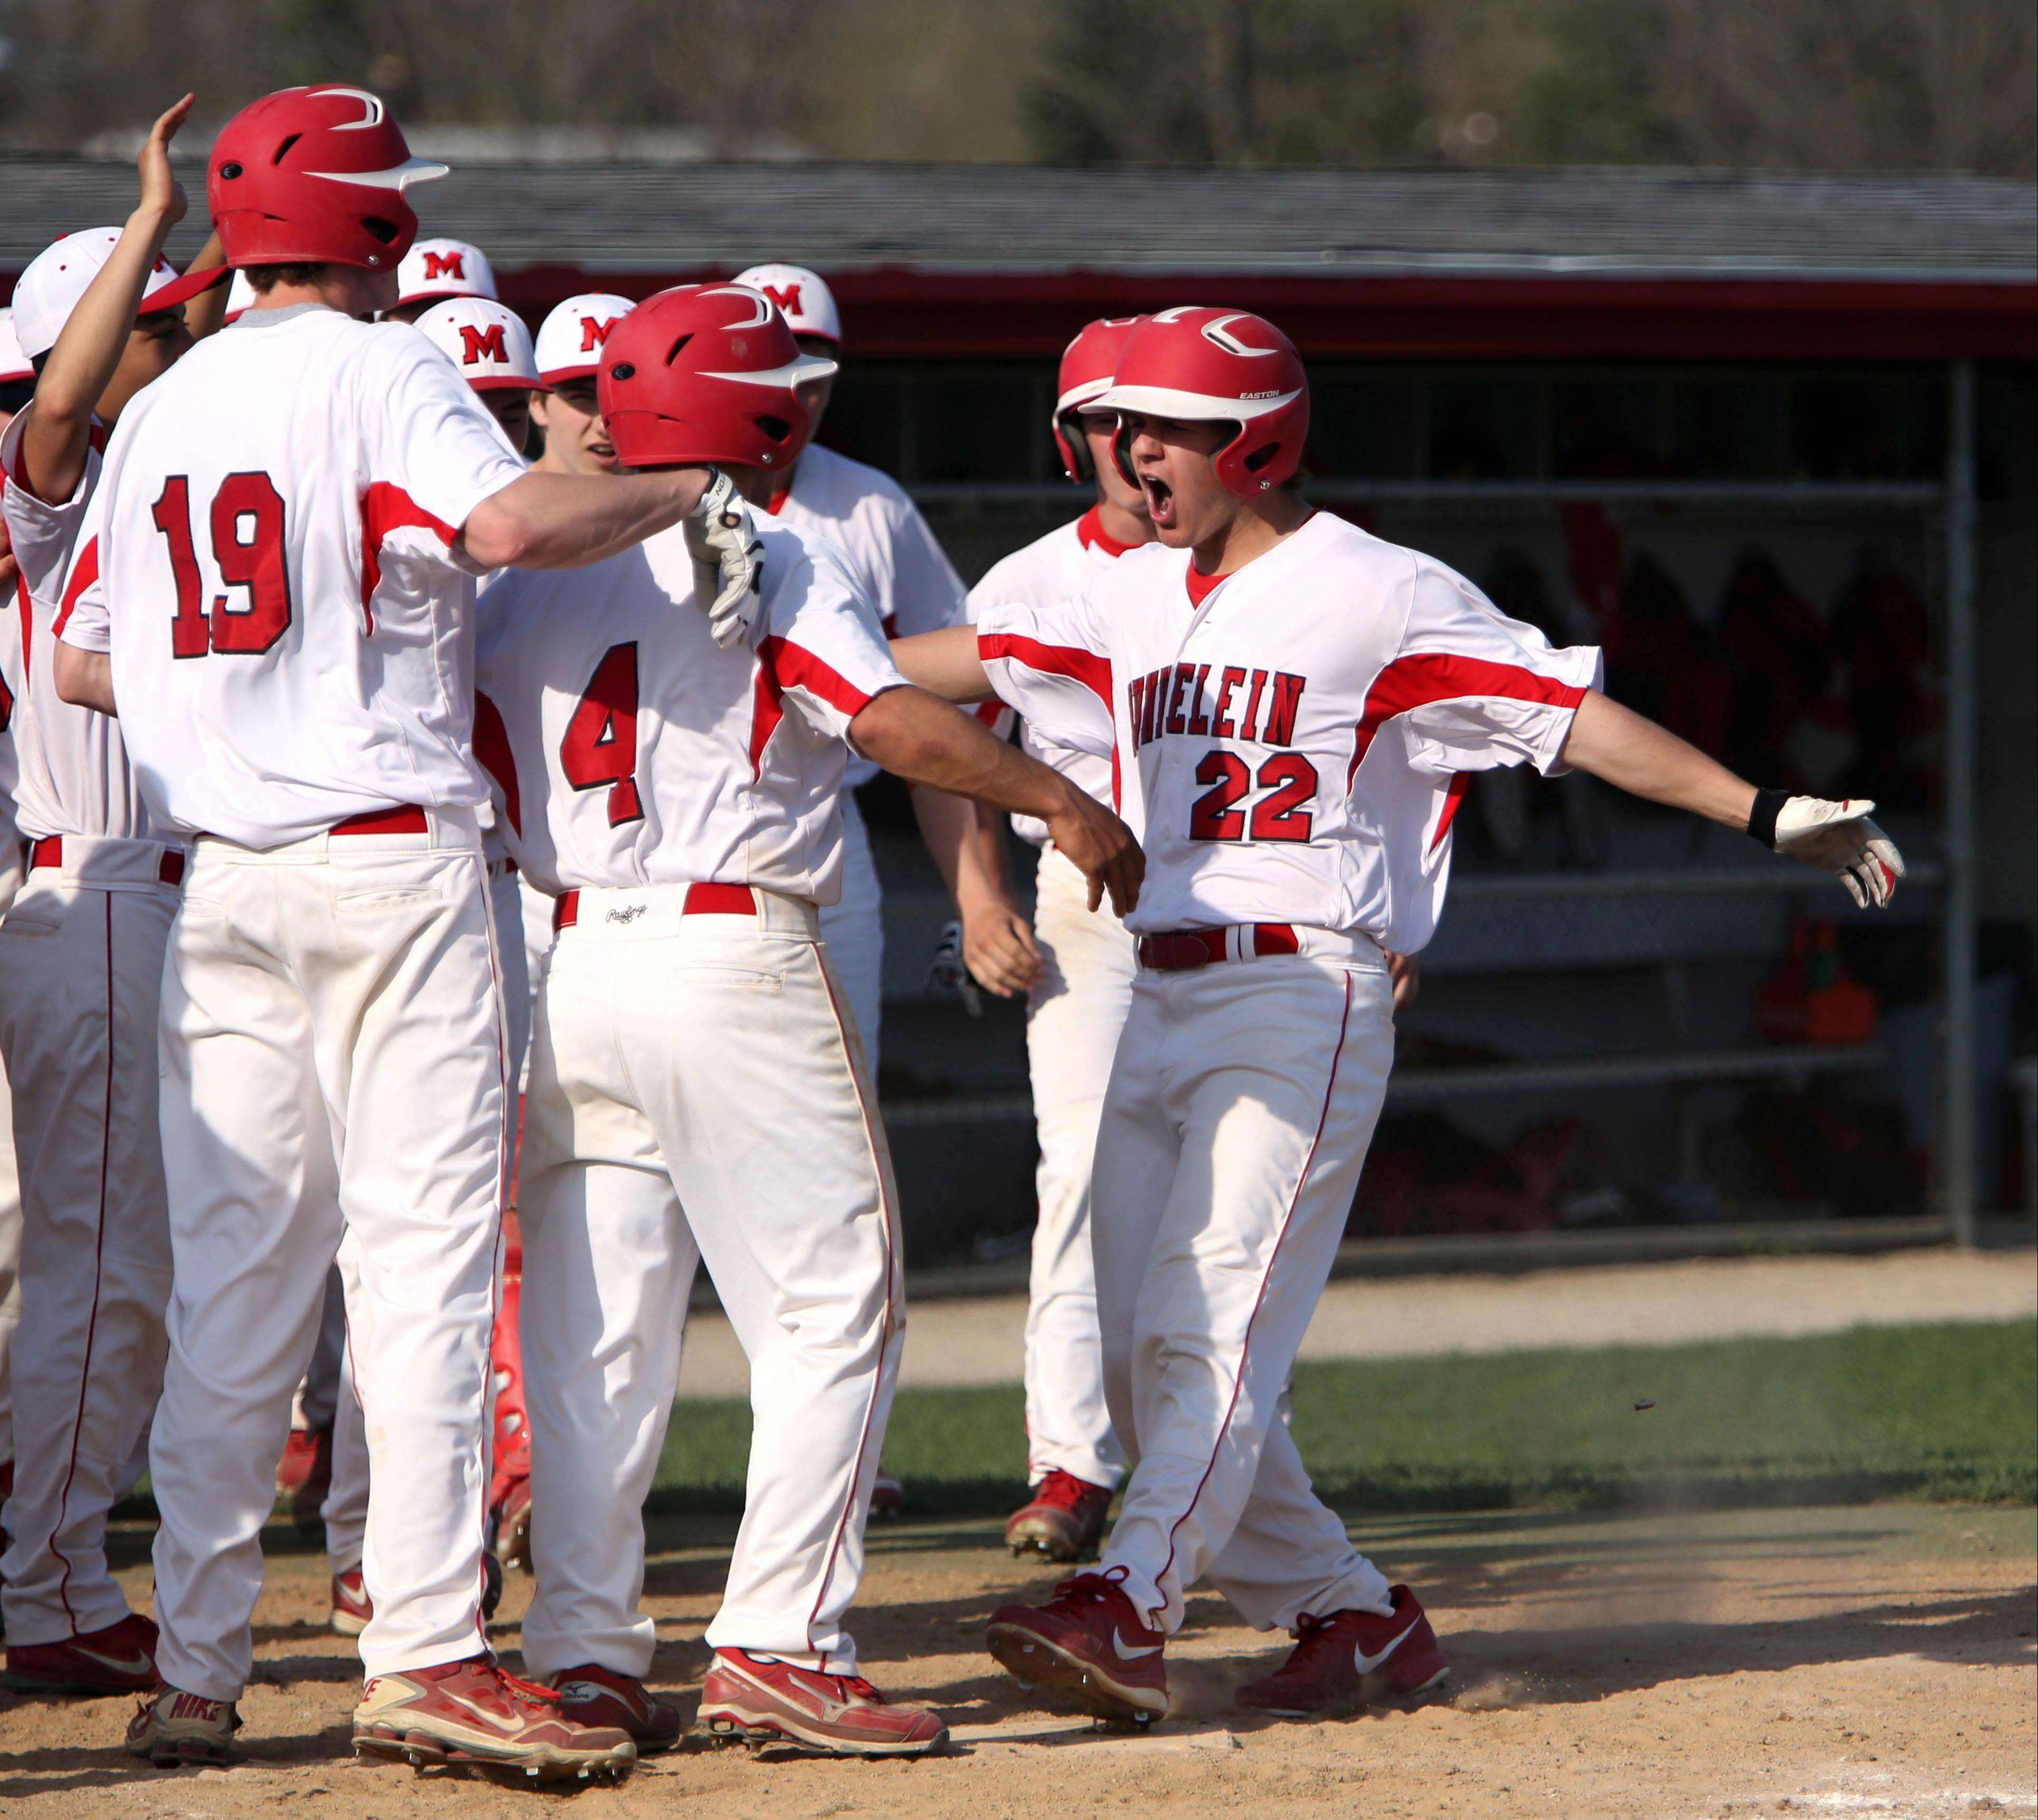 Mundelein's Will Farmer, right, is met by his teammates as he crosses the plate after a home run against Libertyville on Tuesday at Mundelein.